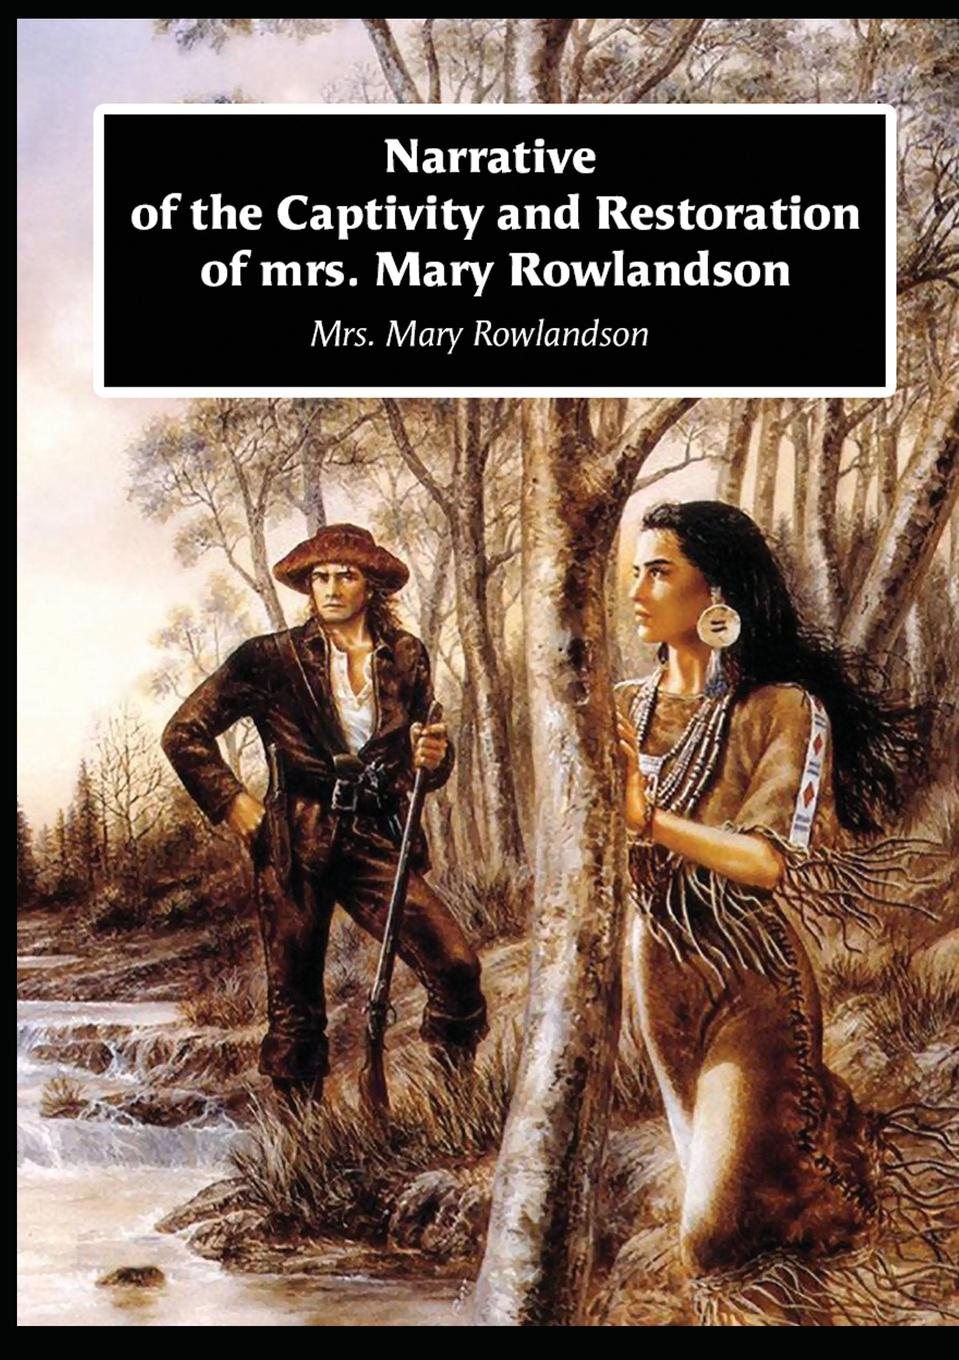 Mrs. Mary Rowlandson Narrative of the Captivity and Restoration of mrs. Mary Rowlandson mary white vensel the qualities of wood